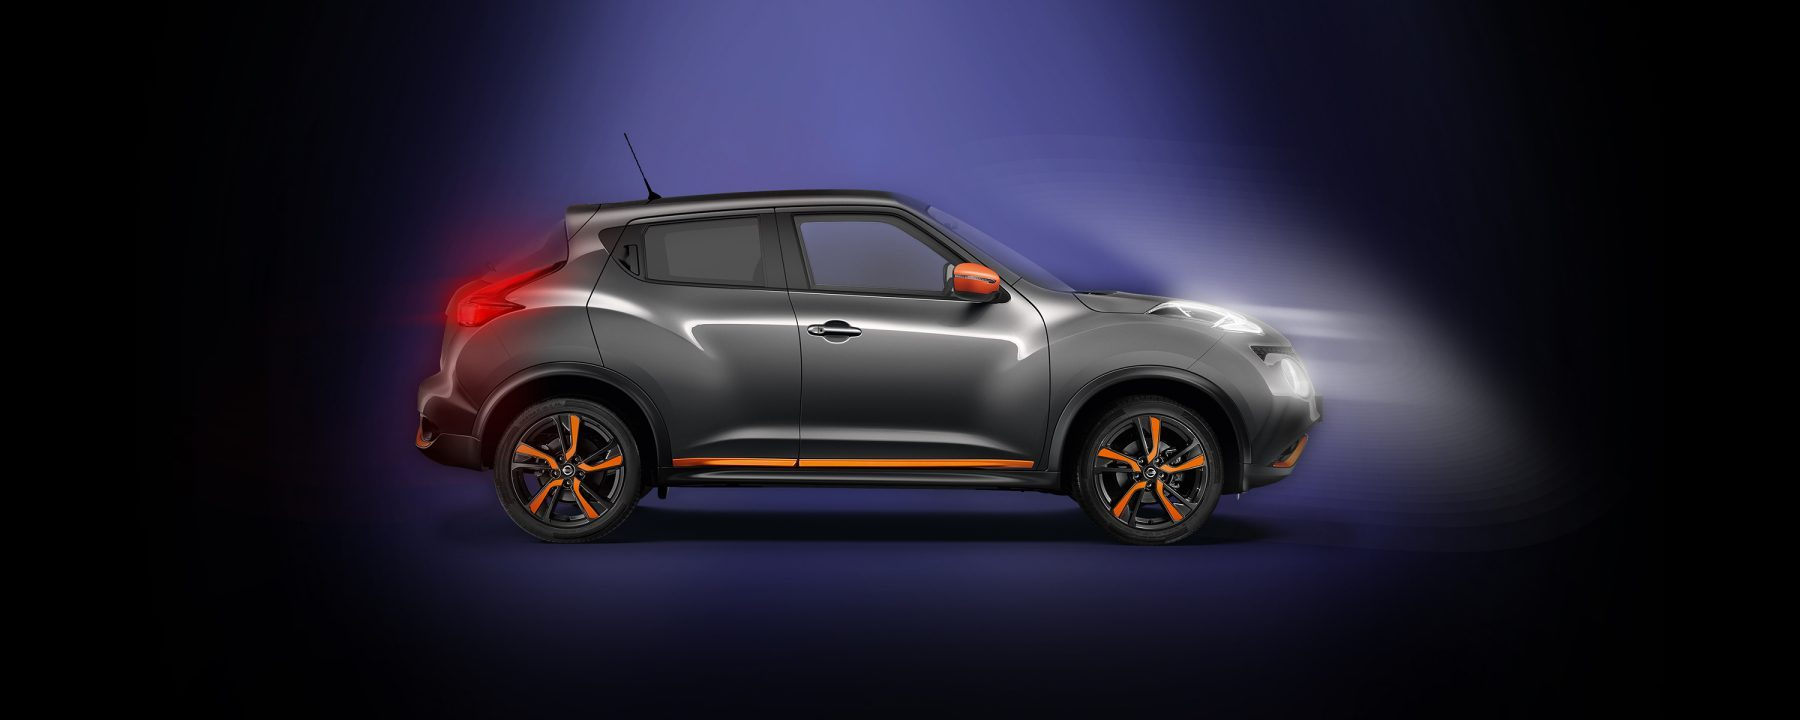 2018-as Nissan Juke profil